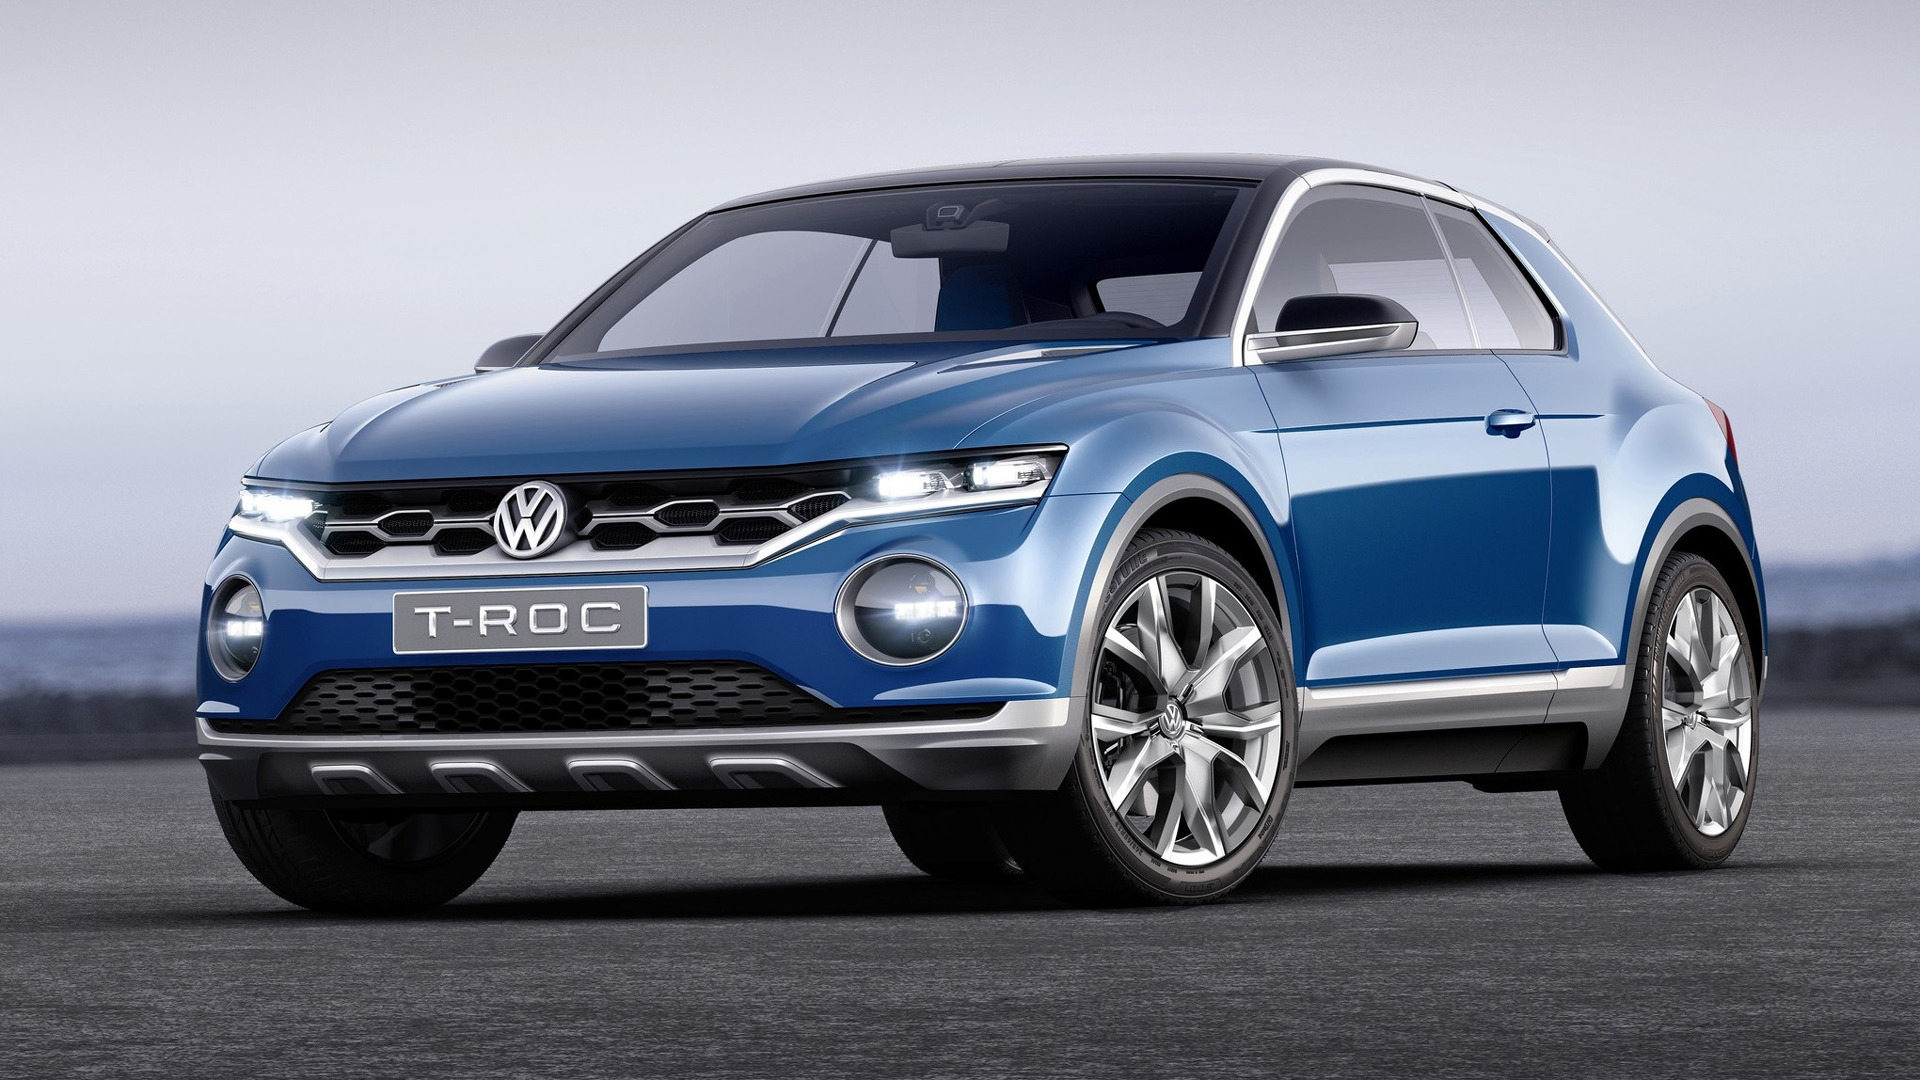 vw t-roc crossover SUV